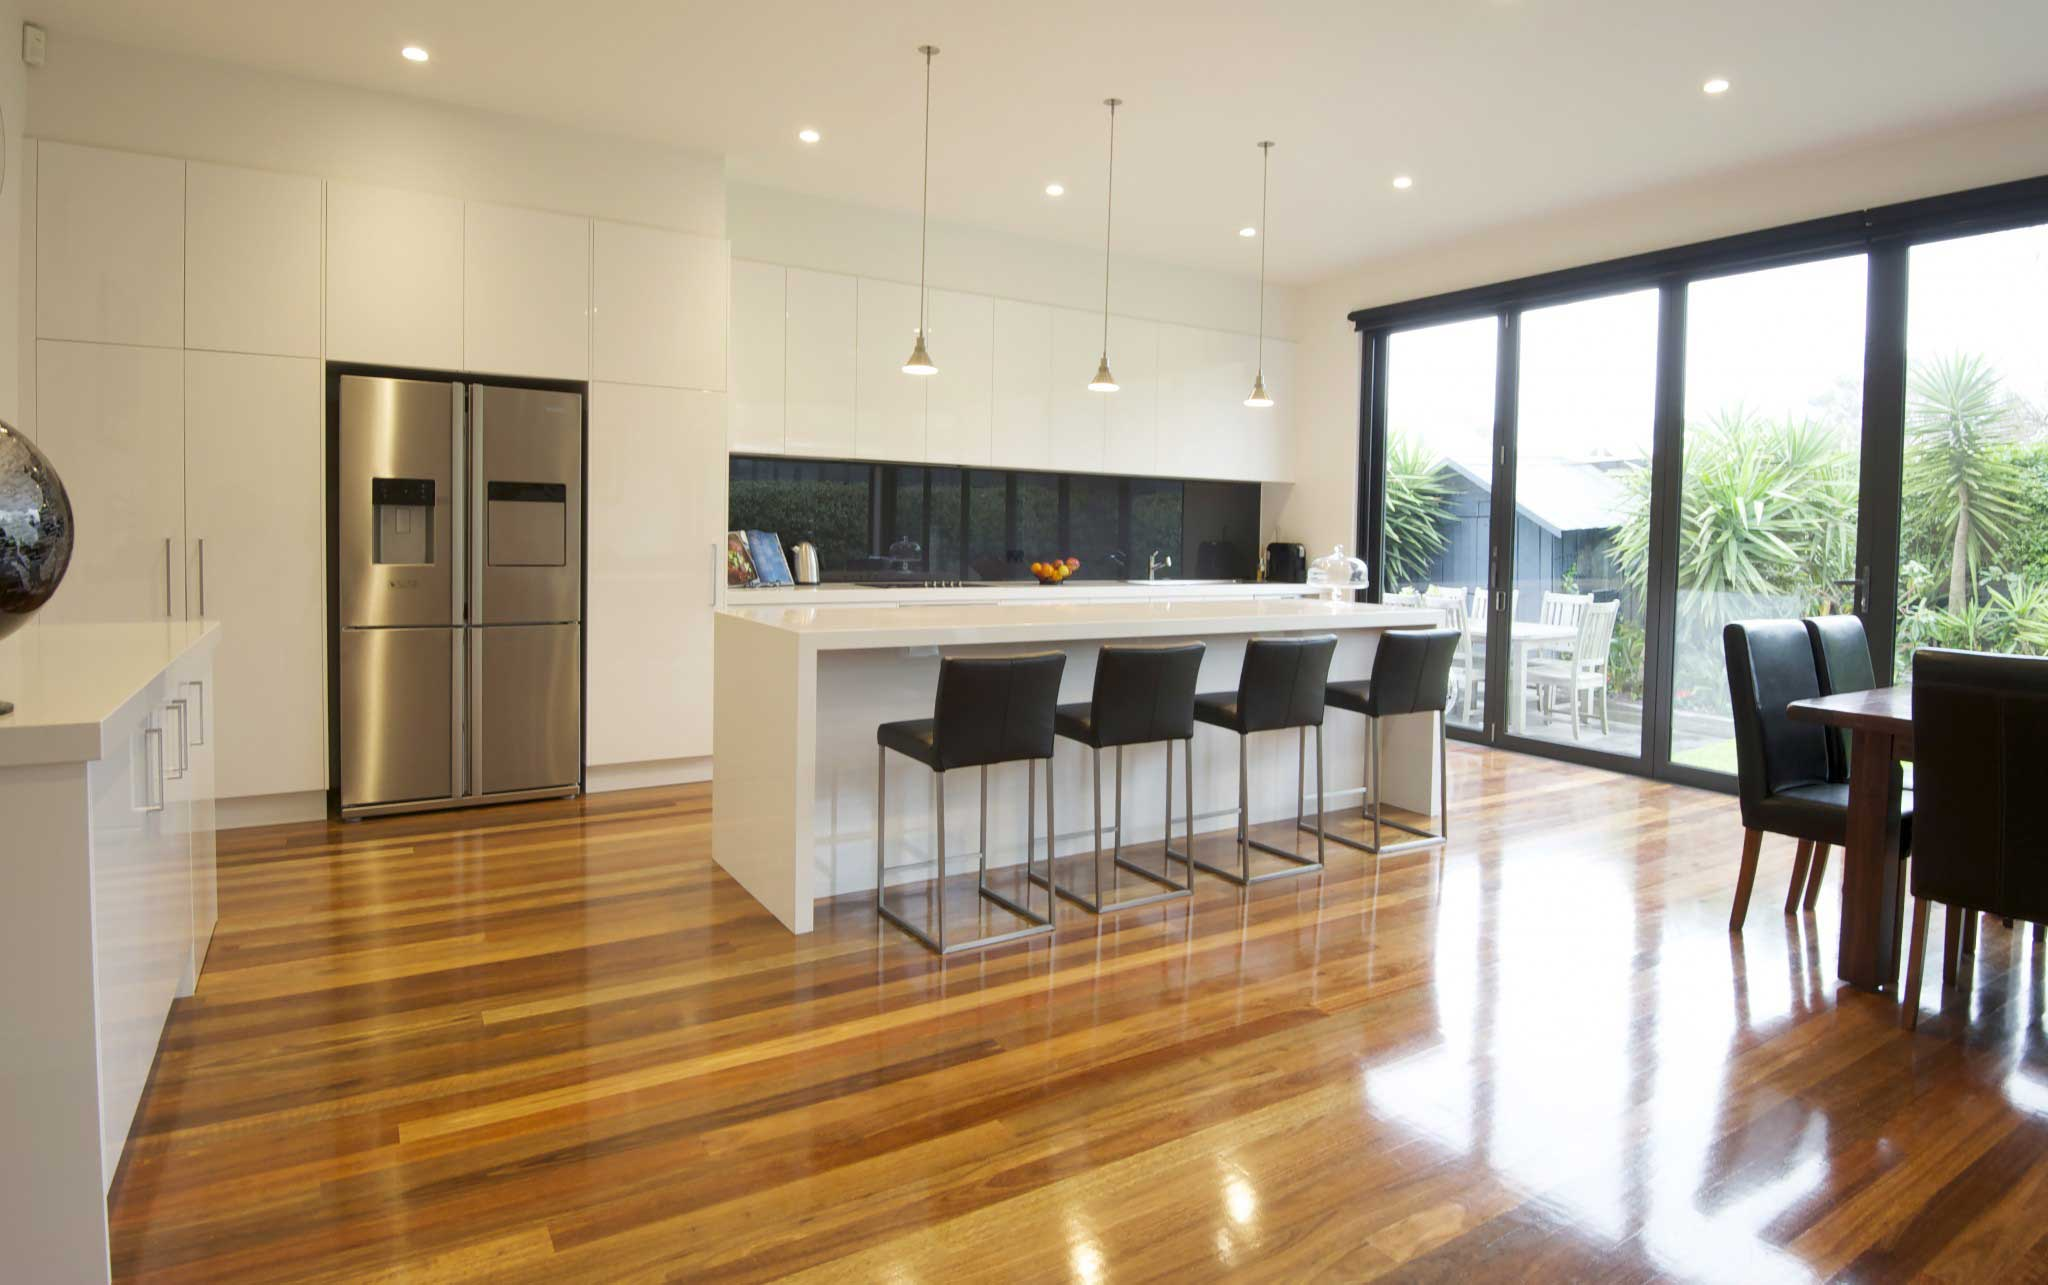 Sandringham Kitchen Renovation